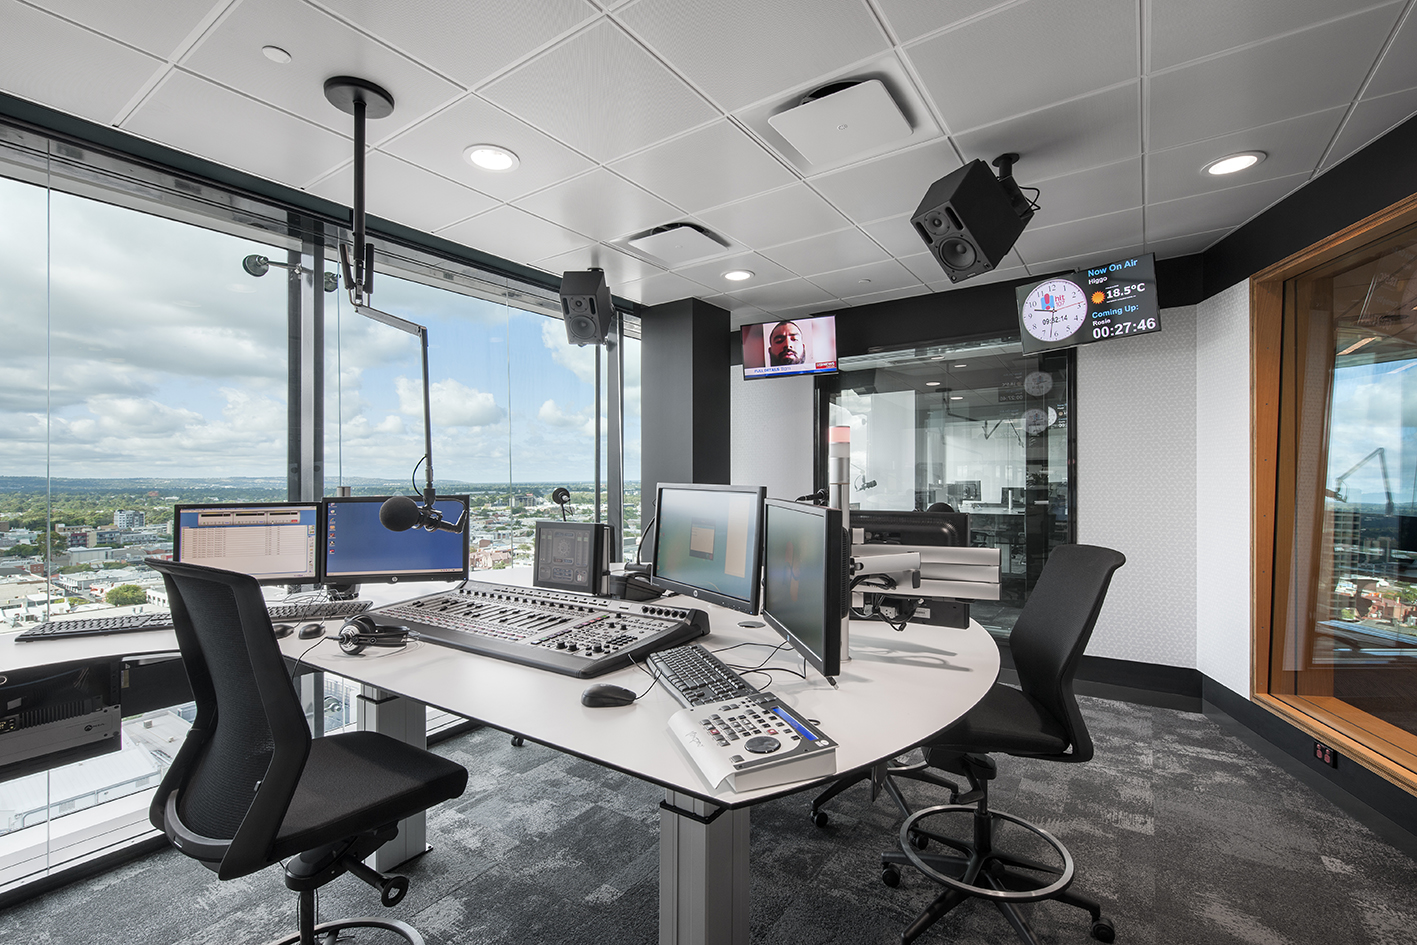 Office Work Adelaide Southern Cross Austereo Adelaide Graham Nicholas